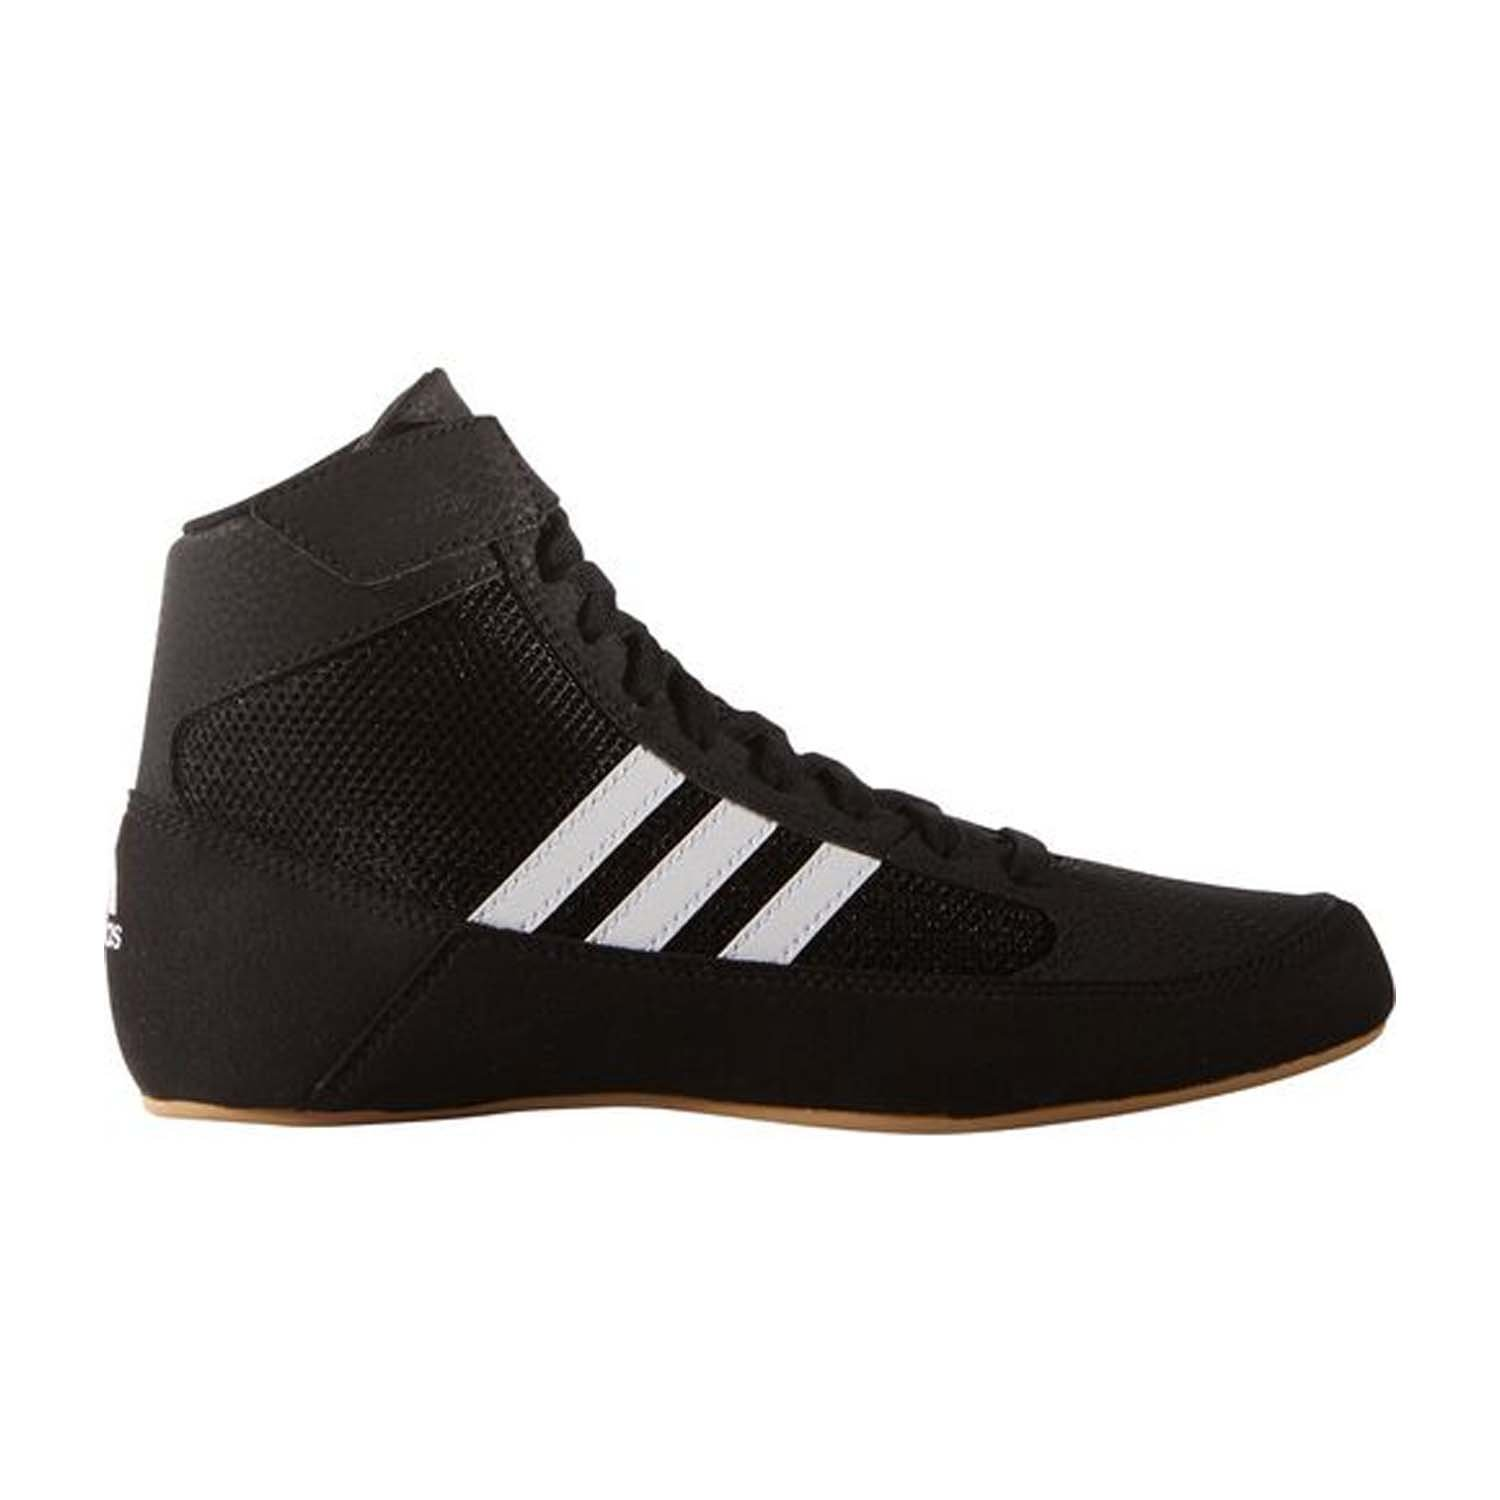 adidas HVC 2 Youth Laced Wrestling Shoes - Black/White/Grey - 2 by adidas